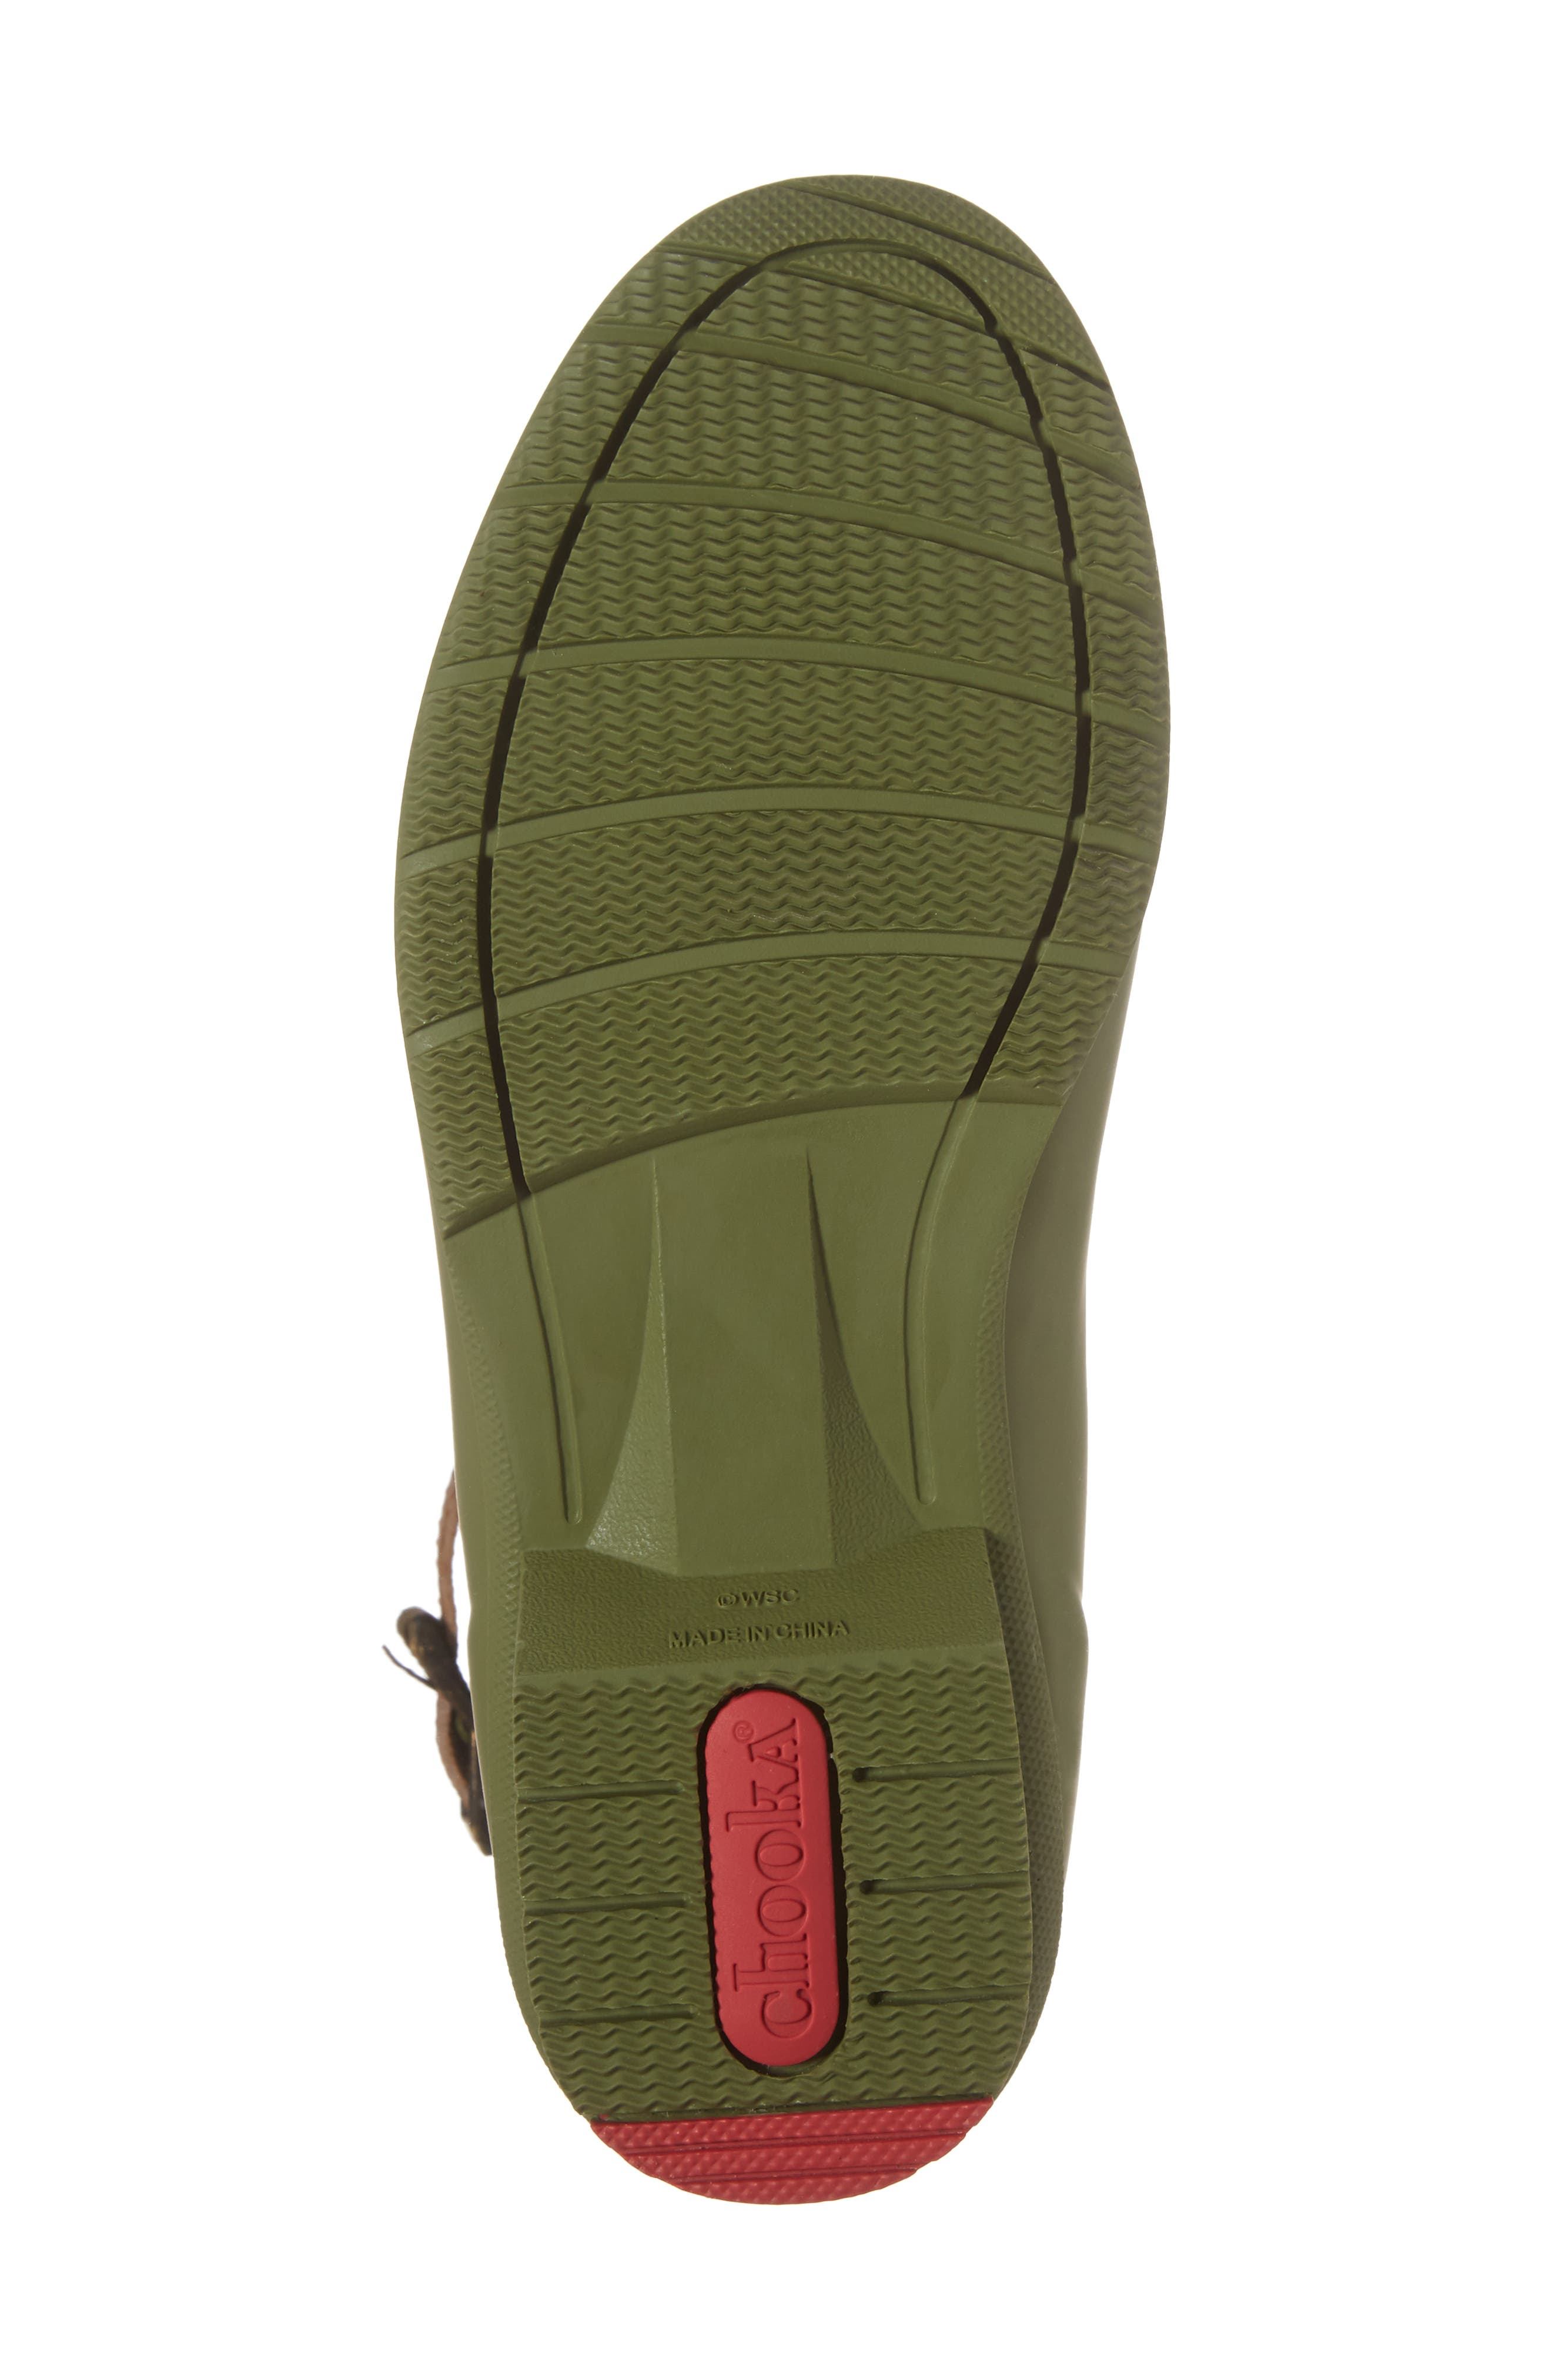 City Solid Mid Height Rain Boot,                             Alternate thumbnail 6, color,                             Olive